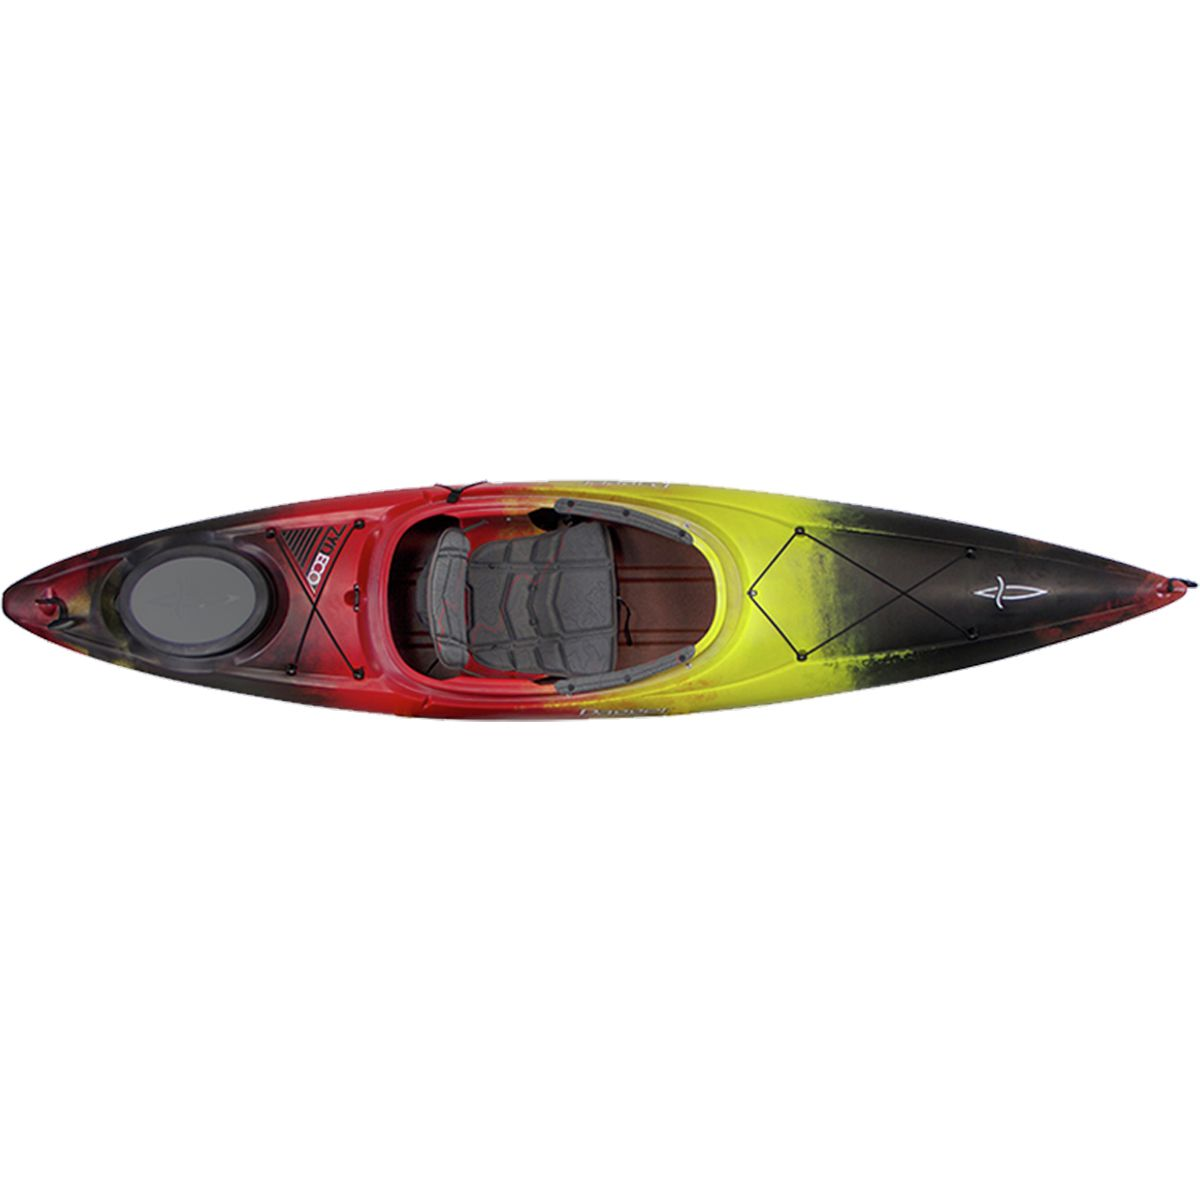 photo: Dagger Zydeco 11.0 recreational kayak